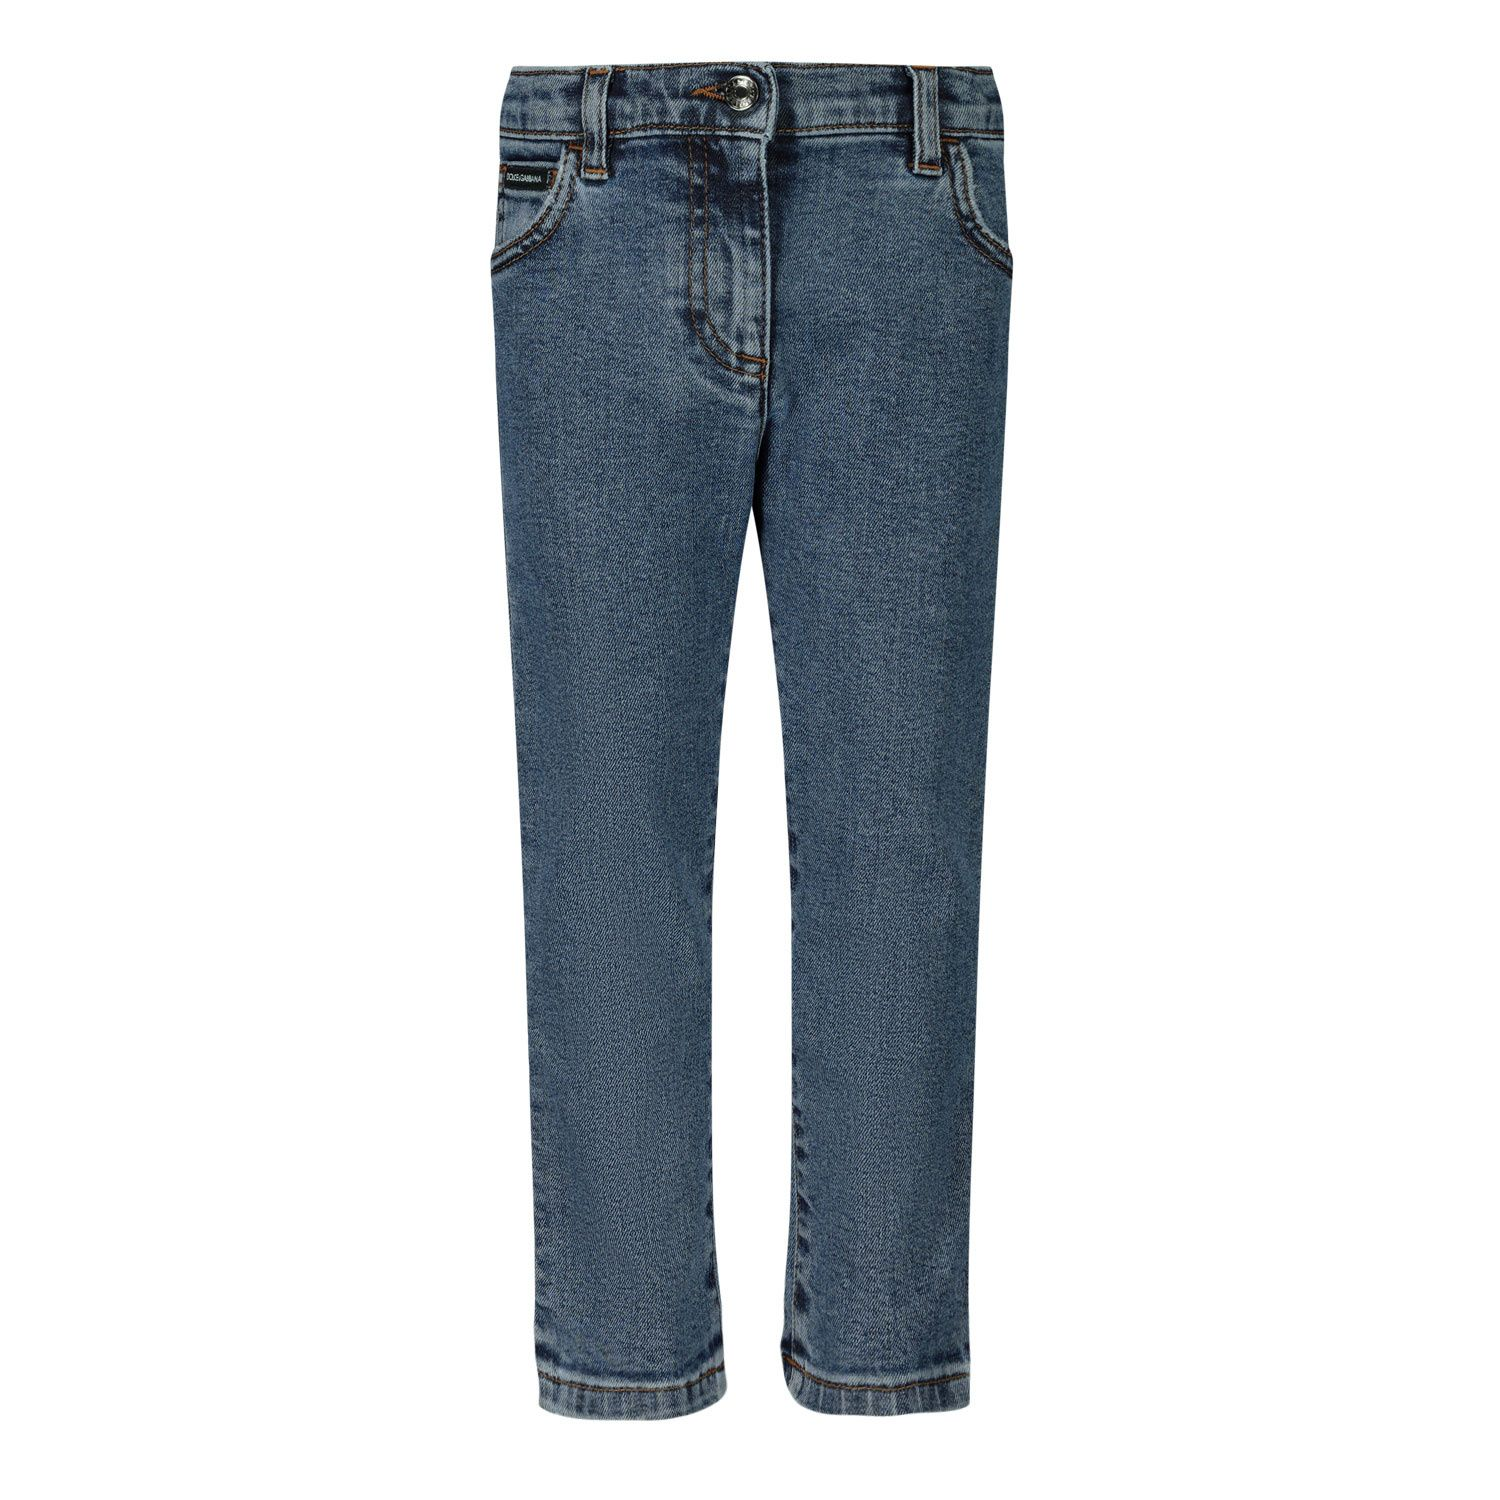 Picture of Dolce & Gabbana L21F60 baby pants jeans